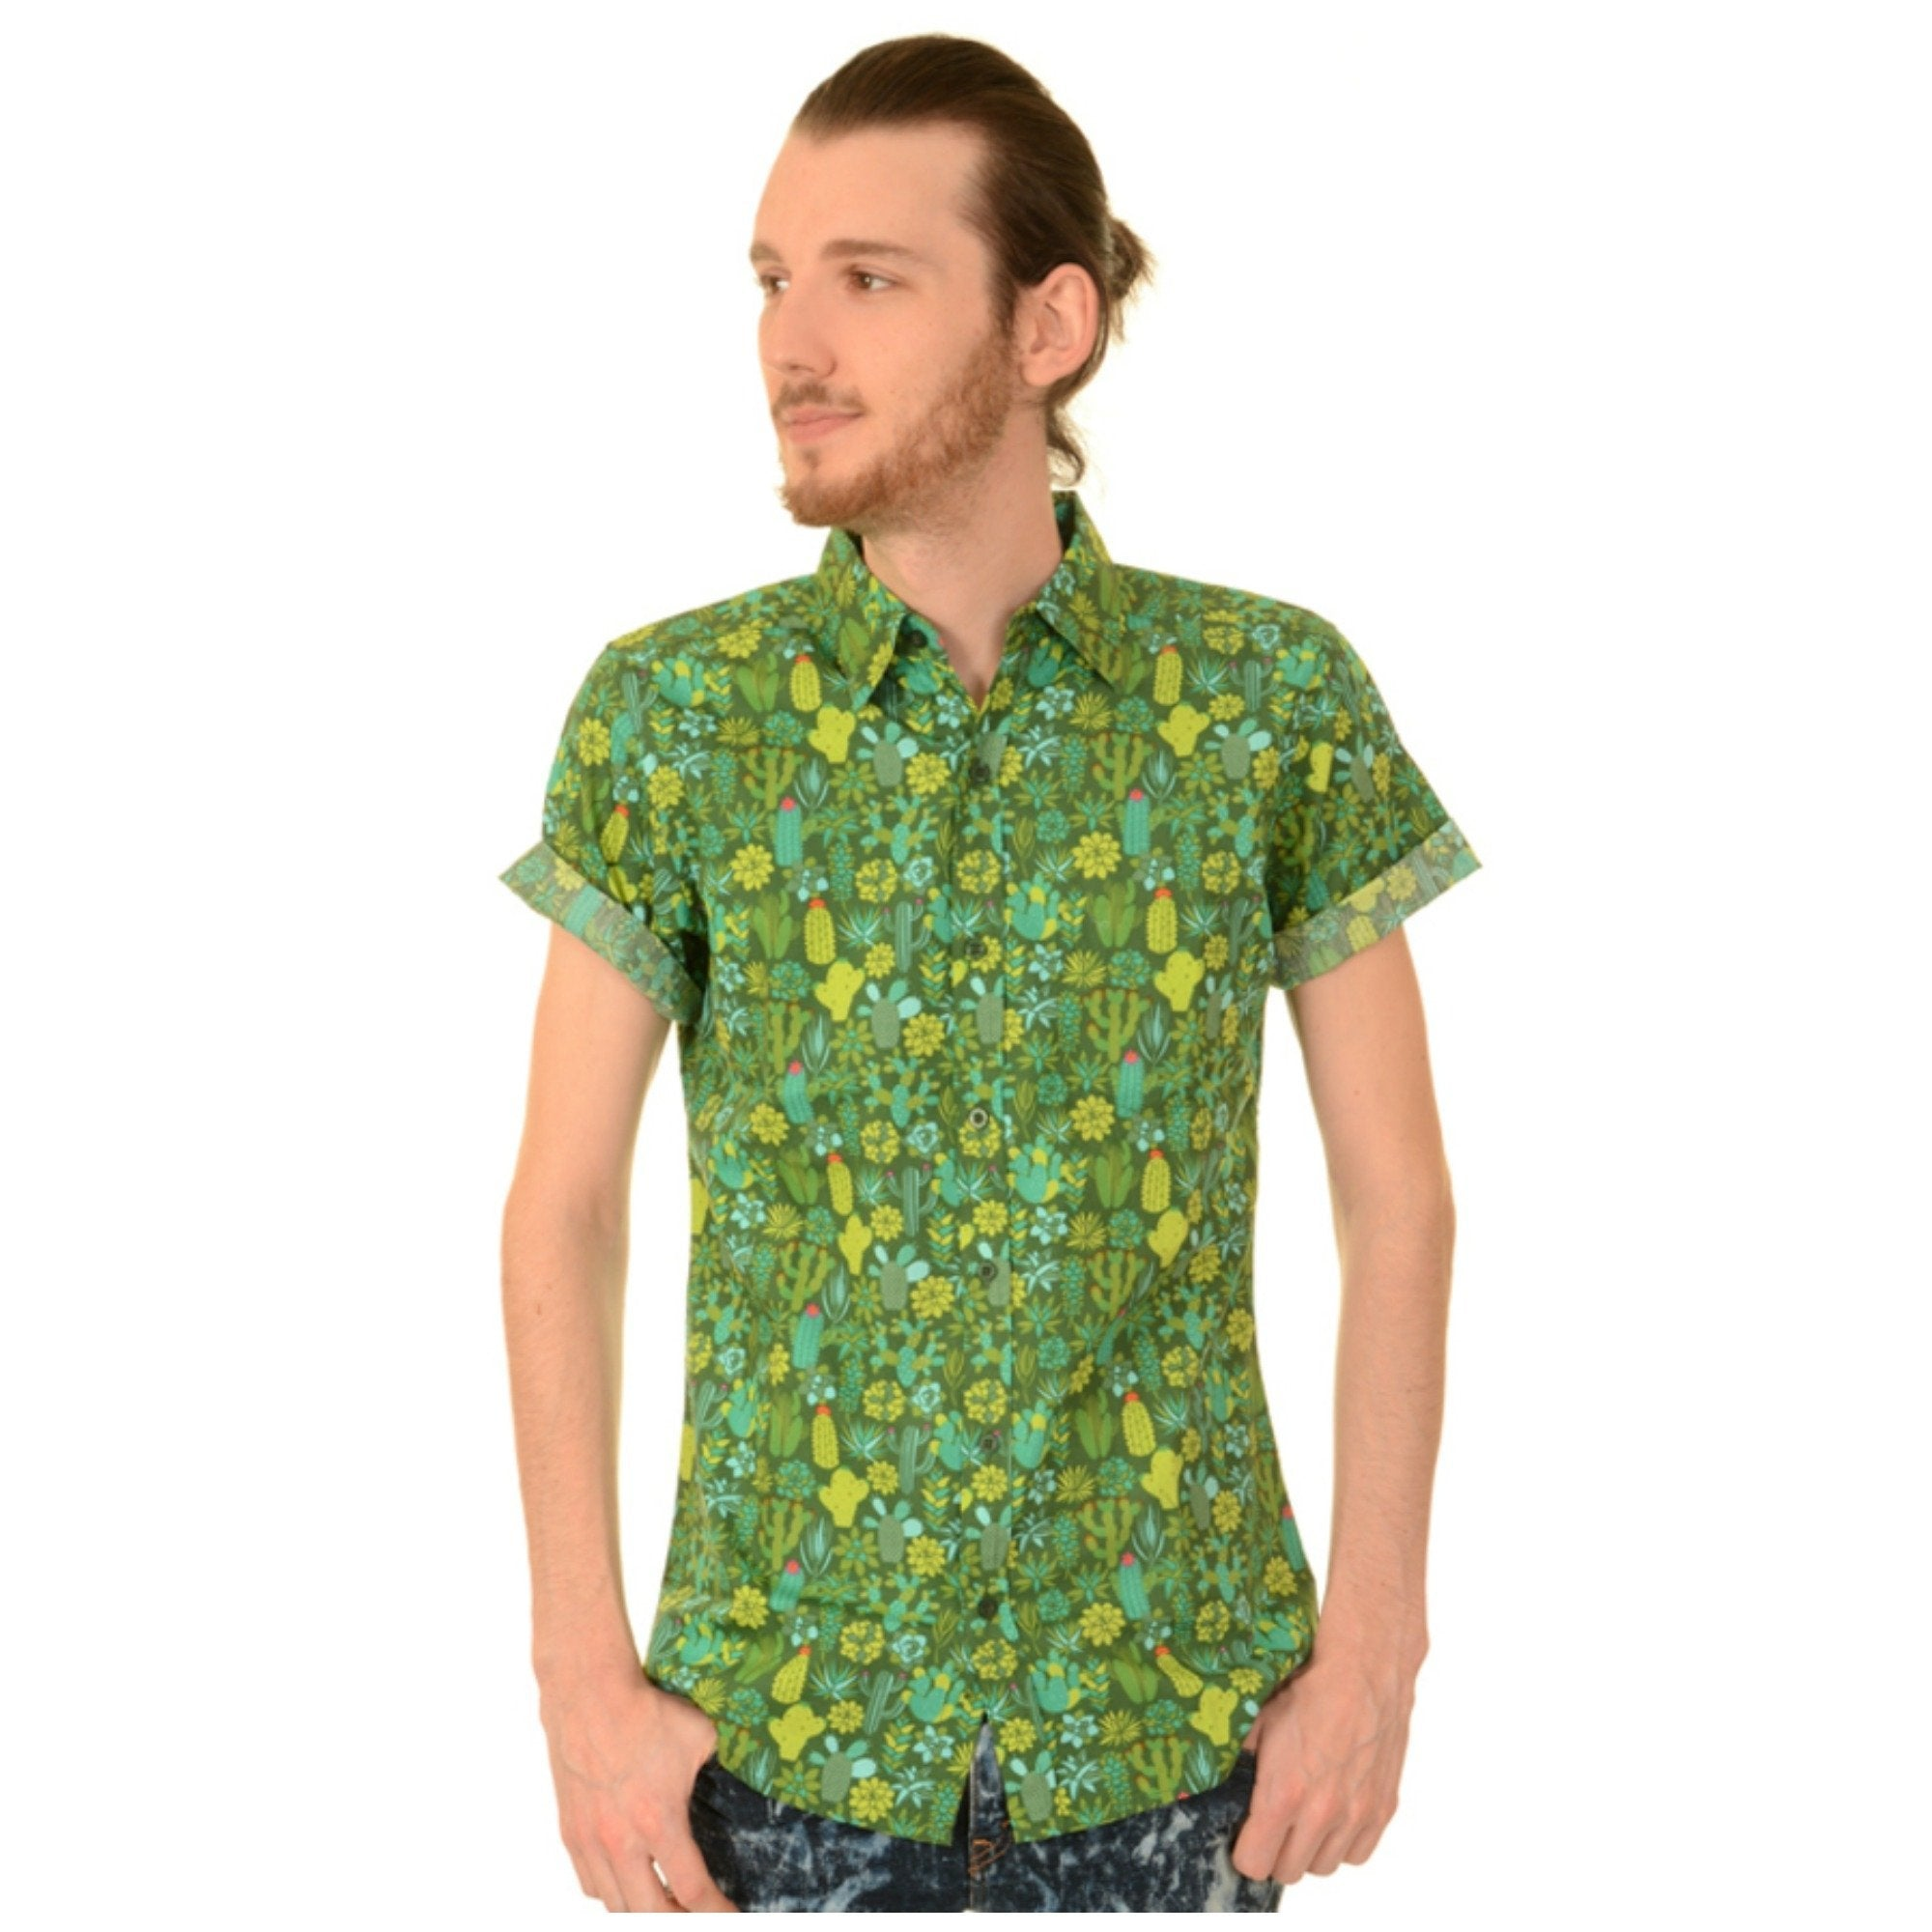 Green Cactus Print Shirt by Run and Fly - Minimum Mouse